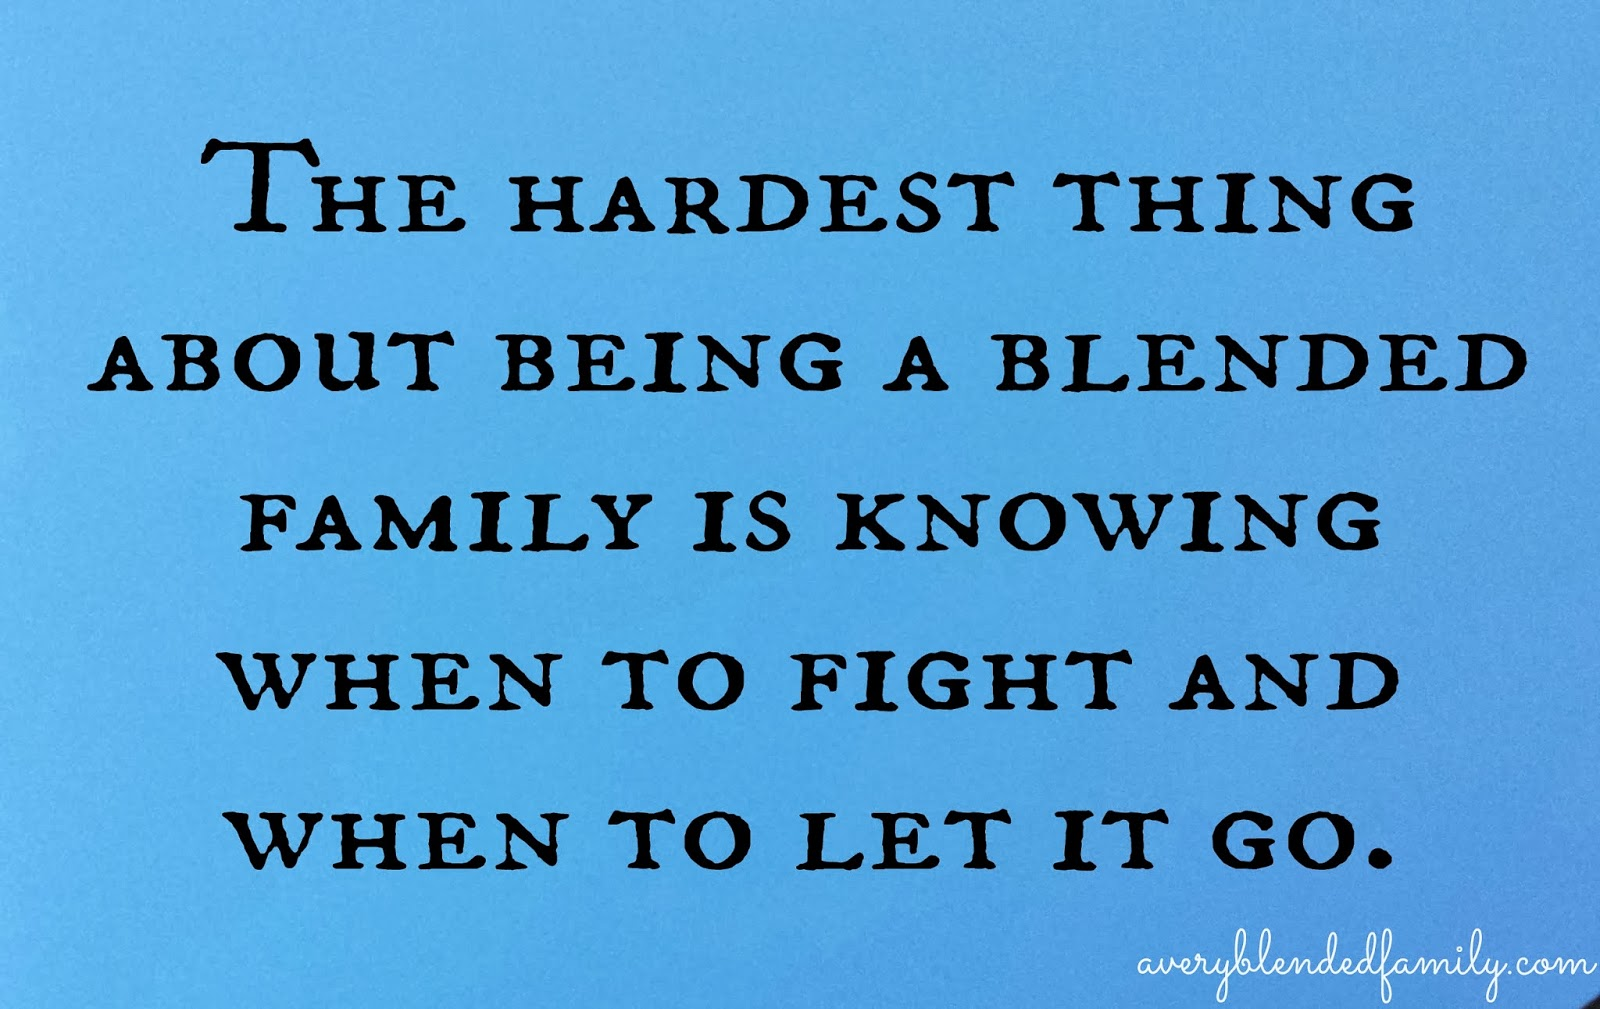 Unloyal Family Quotes And Sayings: Blended Family Quotes And Sayings. QuotesGram